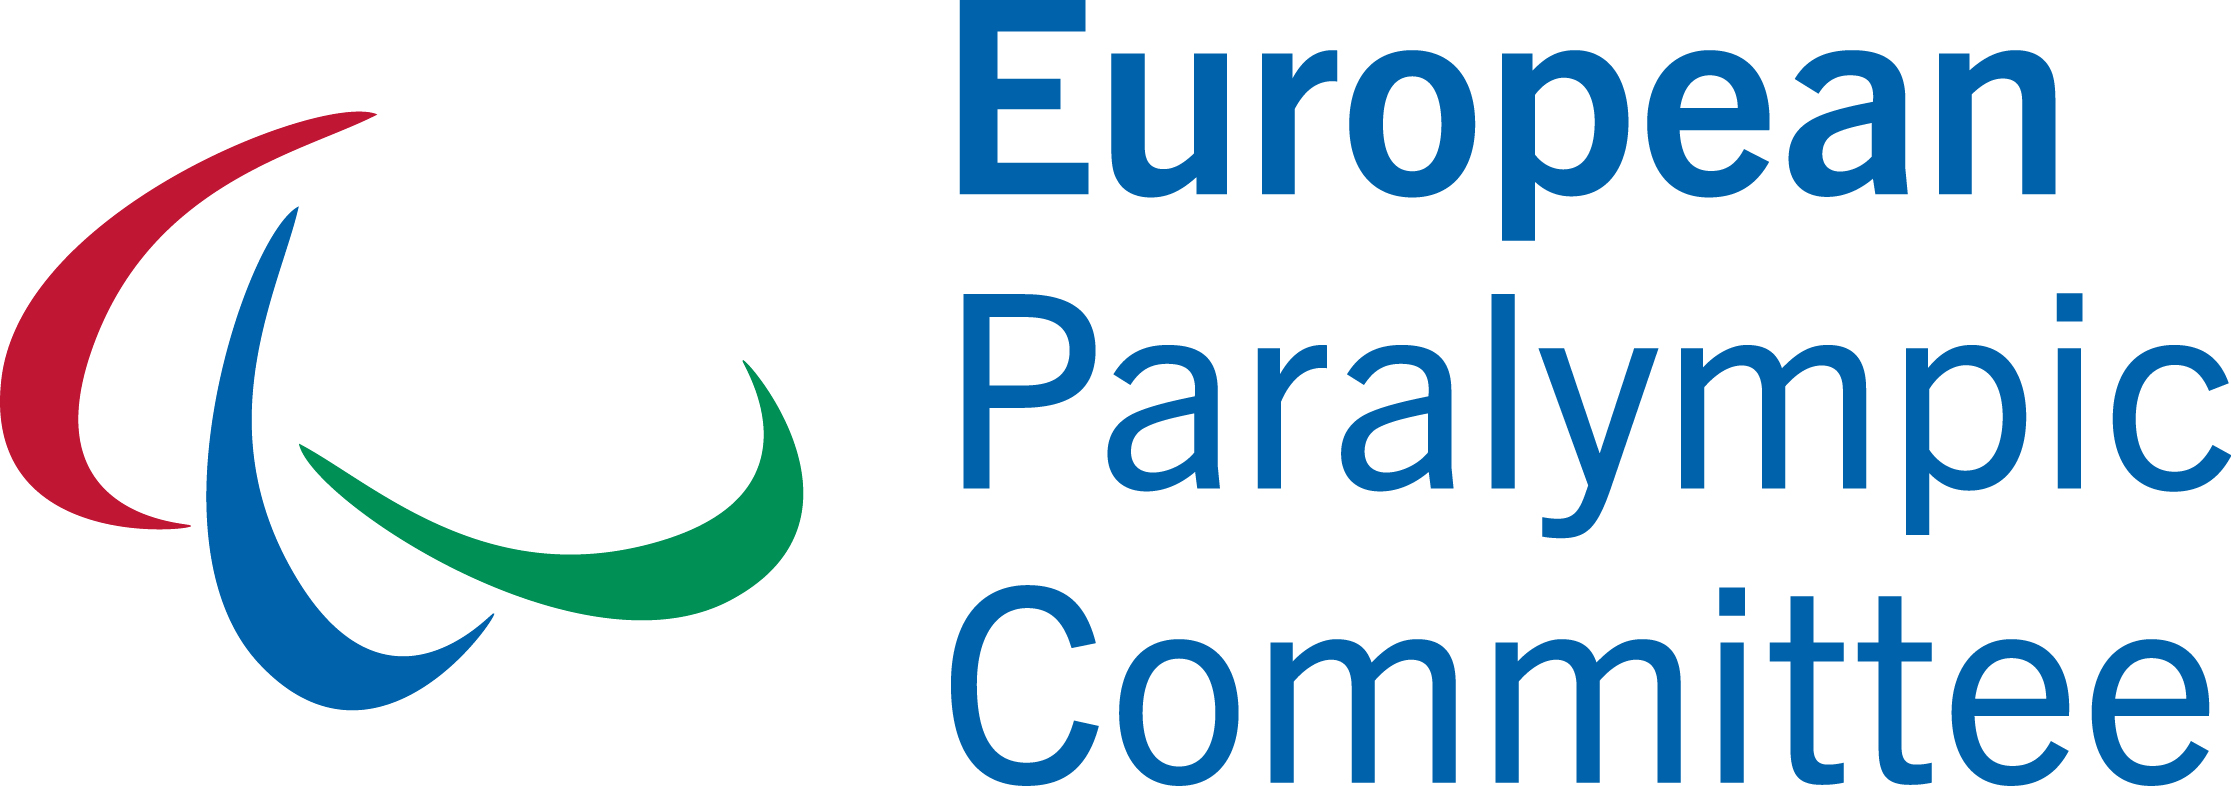 European Paralympic Committee logo